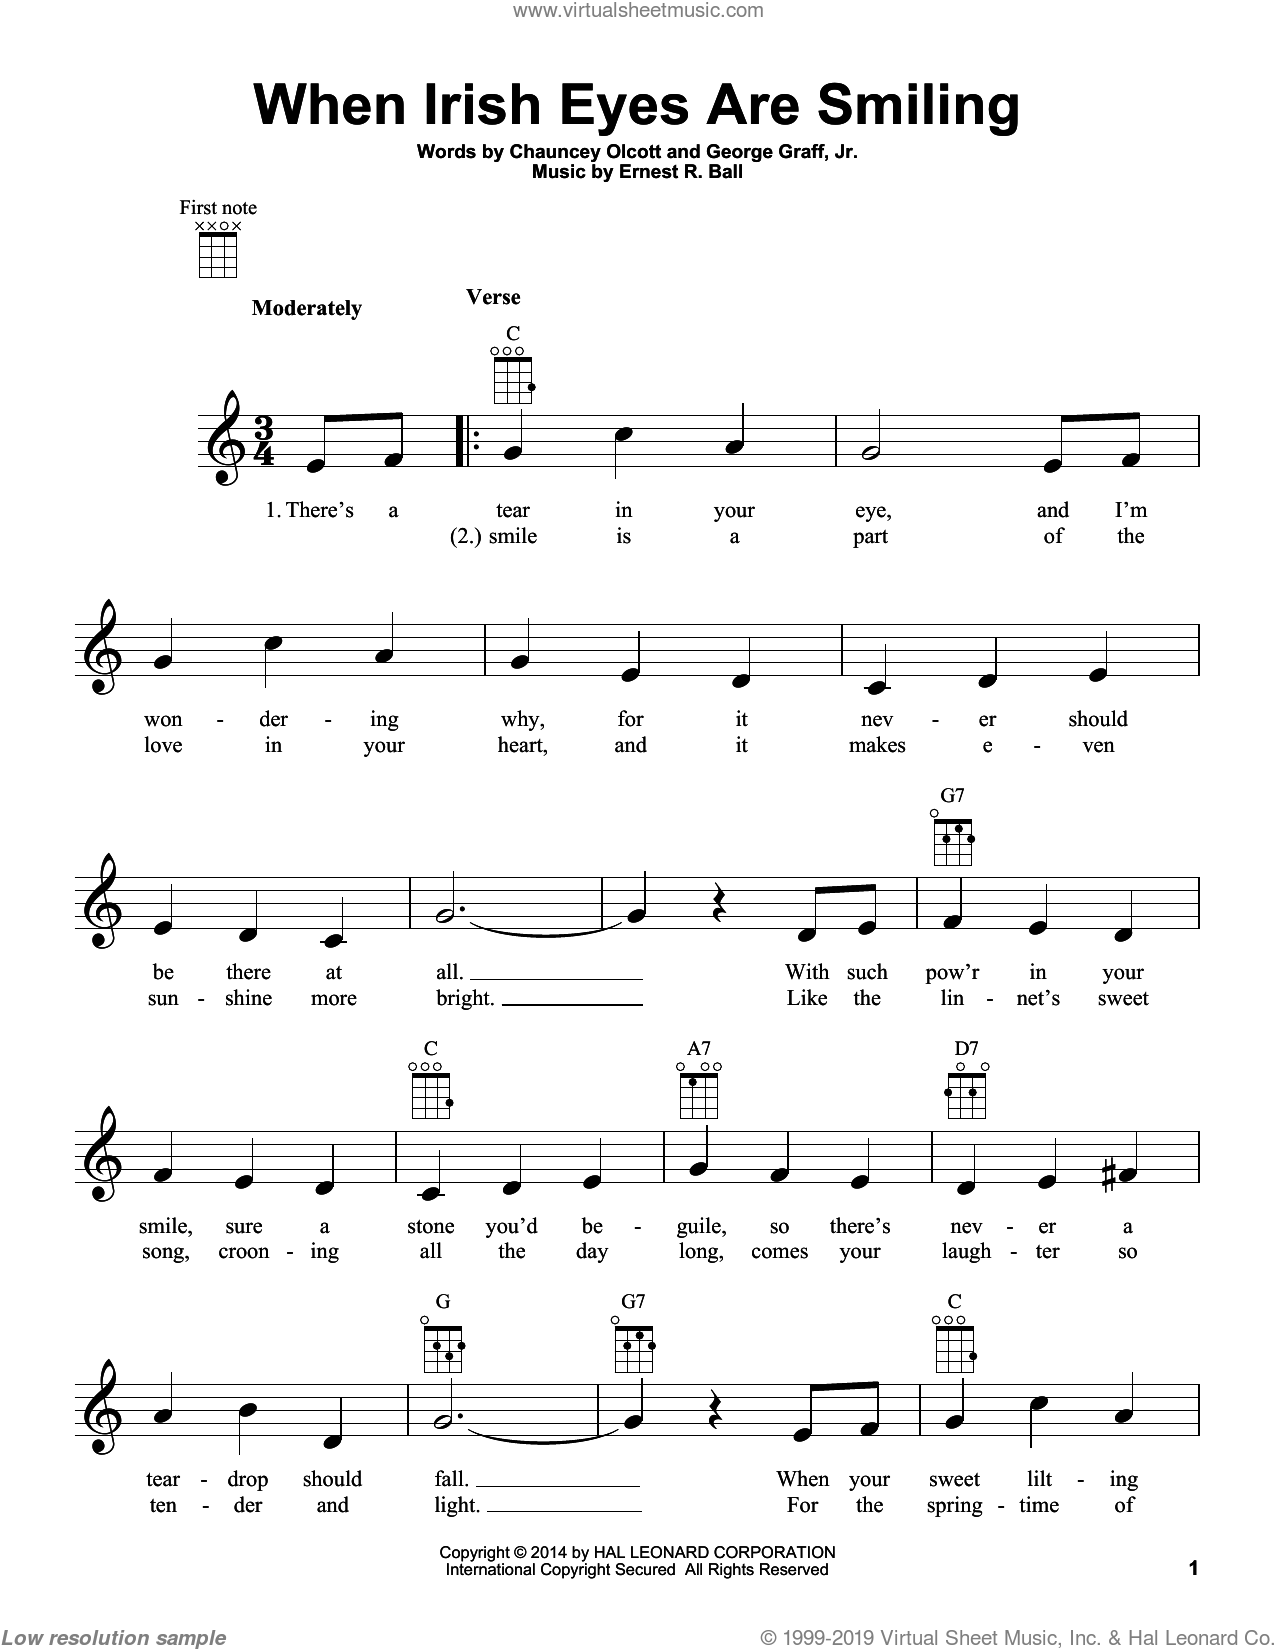 When Irish Eyes Are Smiling sheet music for ukulele by George Graff Jr. and Chauncey Olcott. Score Image Preview.